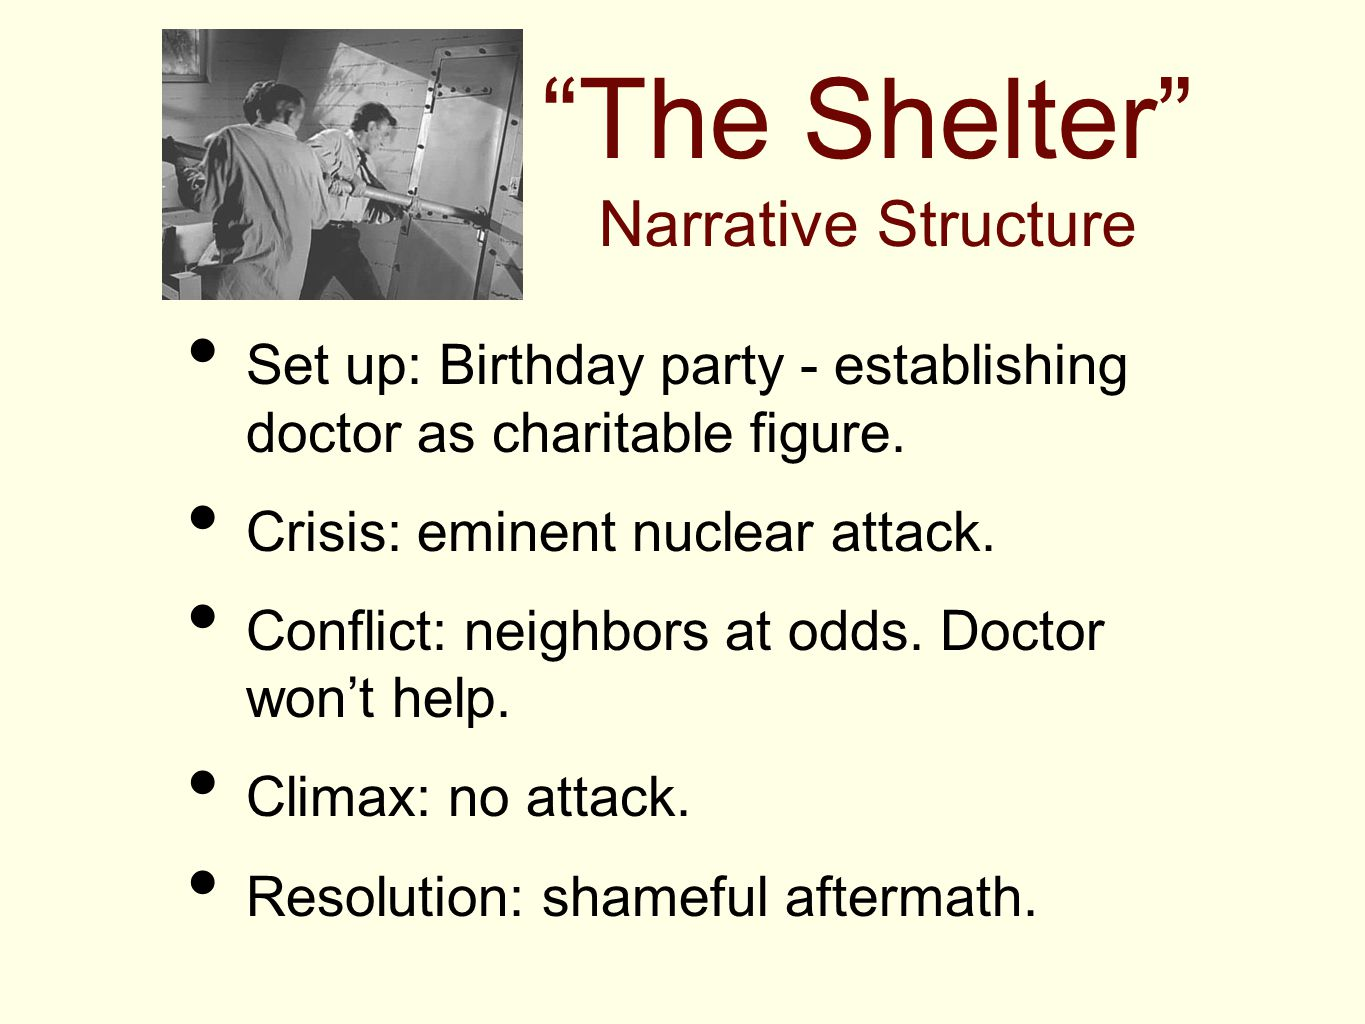 The Shelter Narrative Structure Set up: Birthday party - establishing doctor as charitable figure.